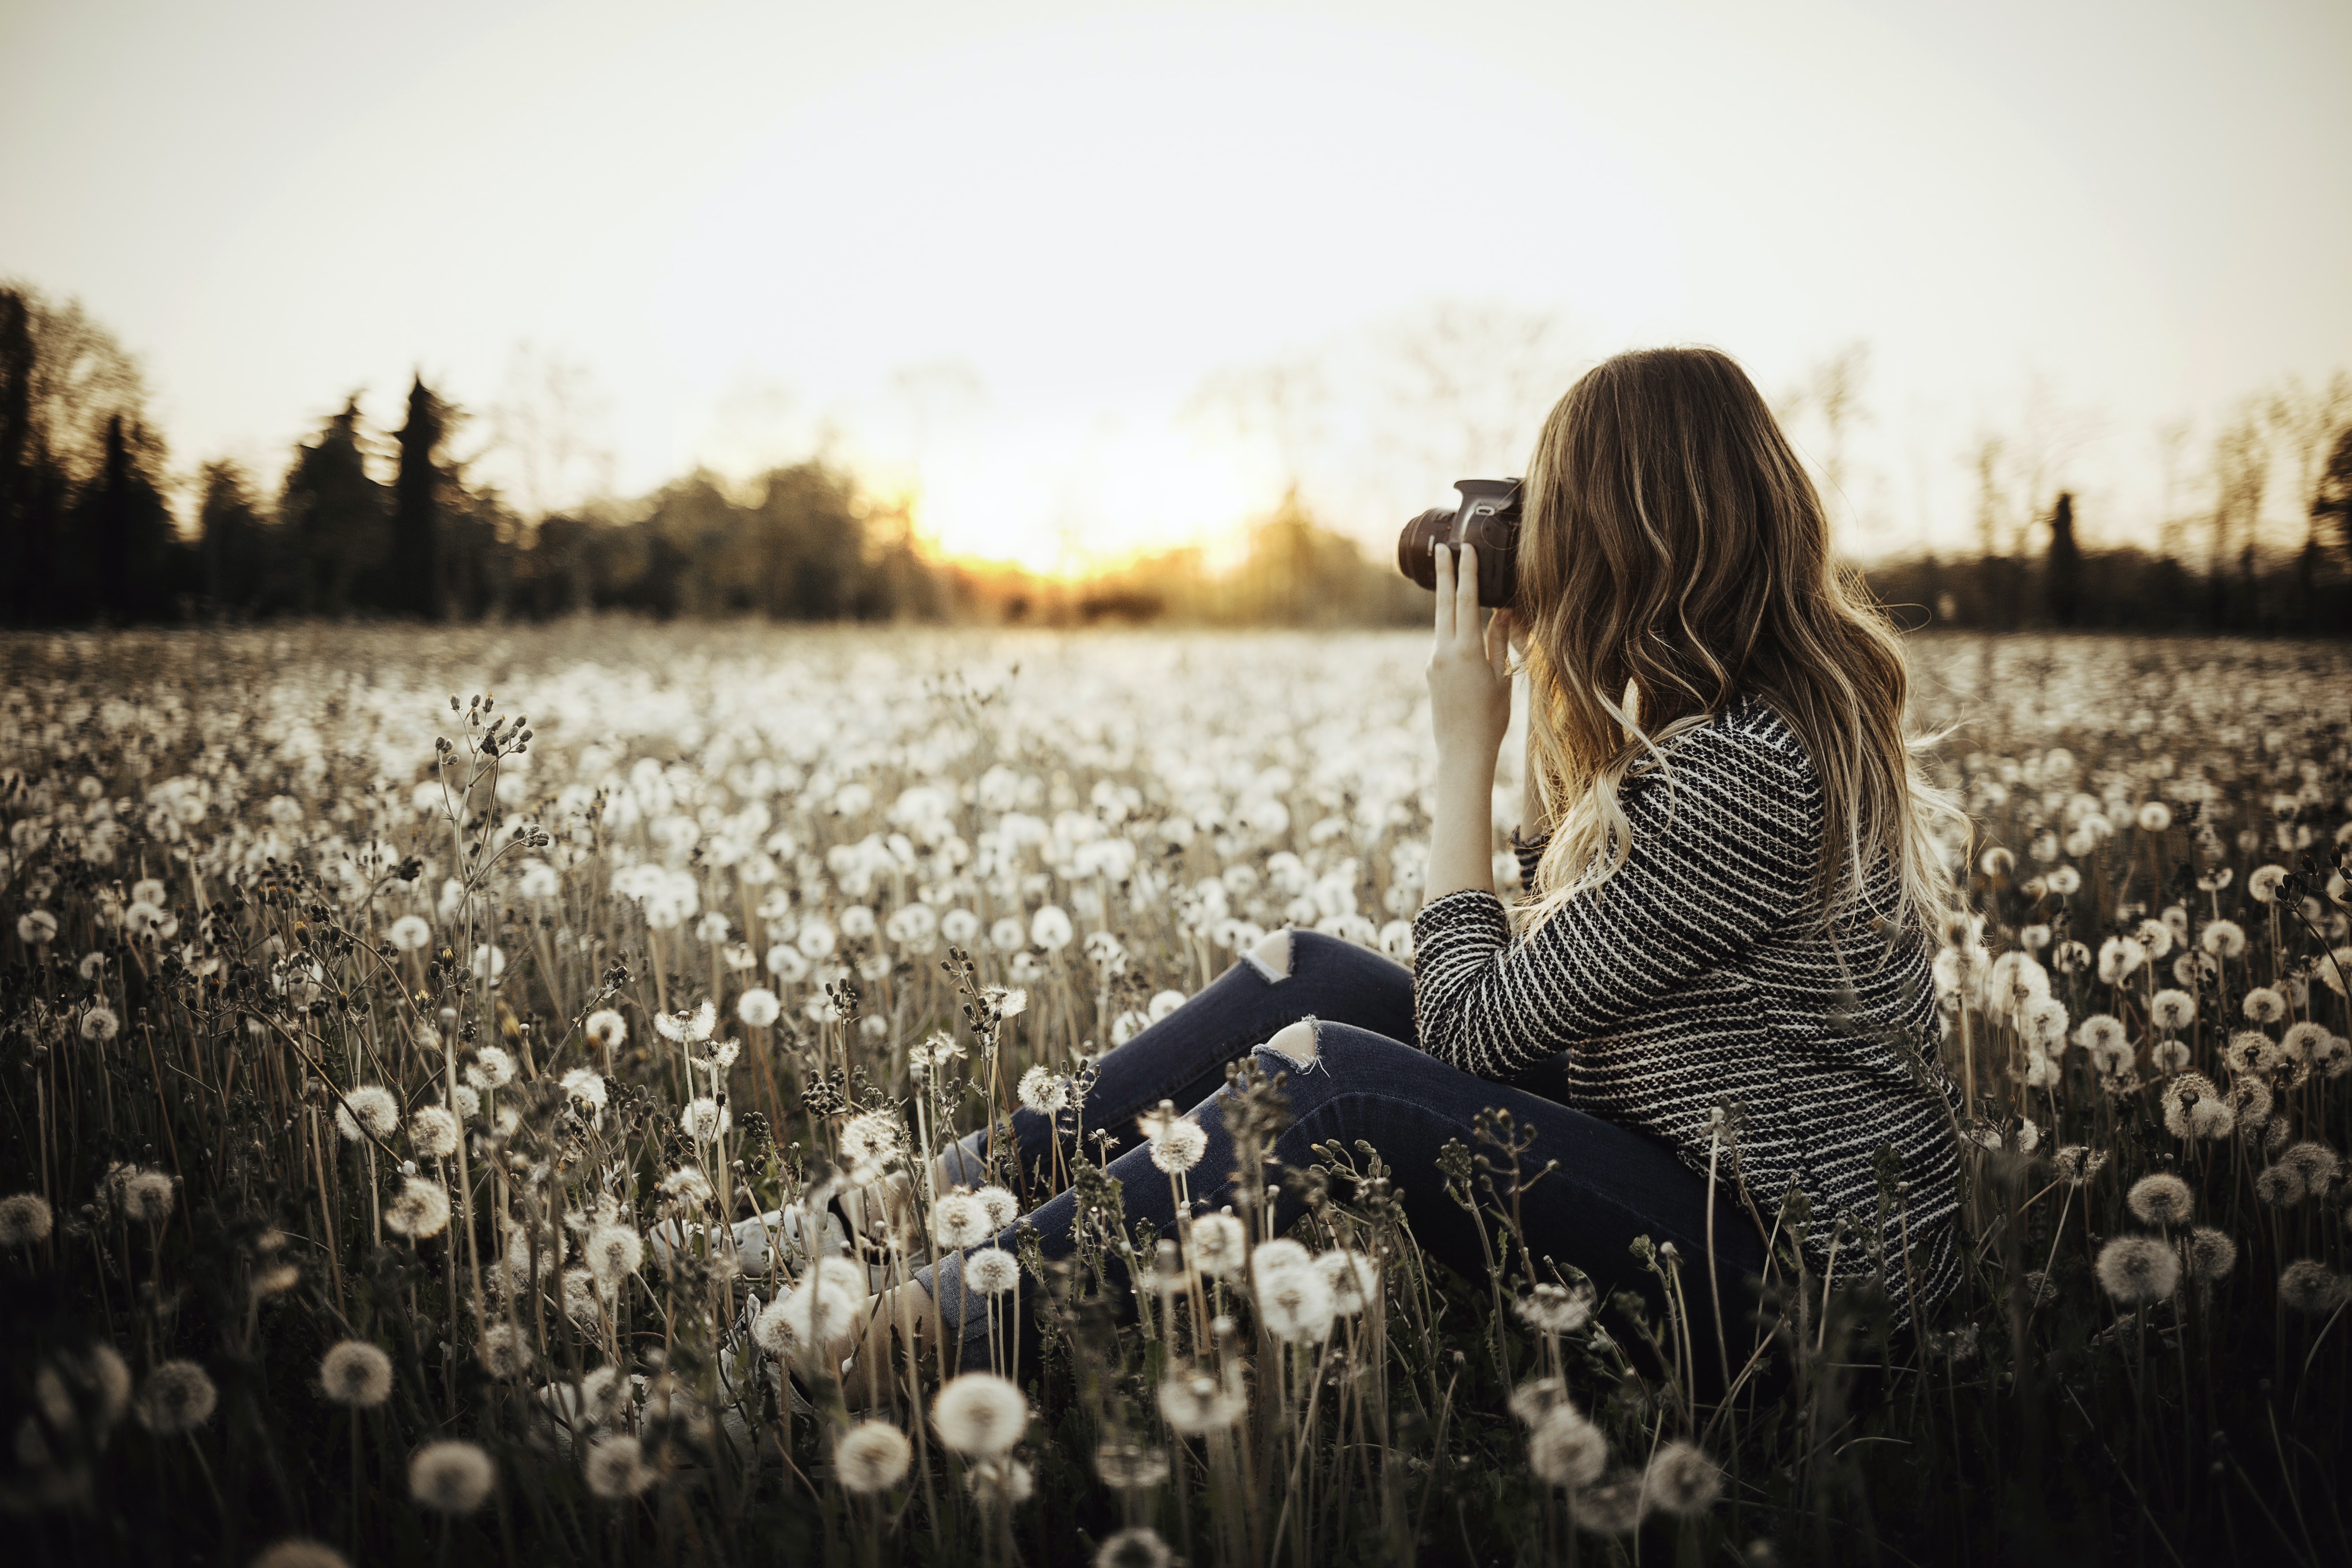 woman sitting on flower field taking photo of trees